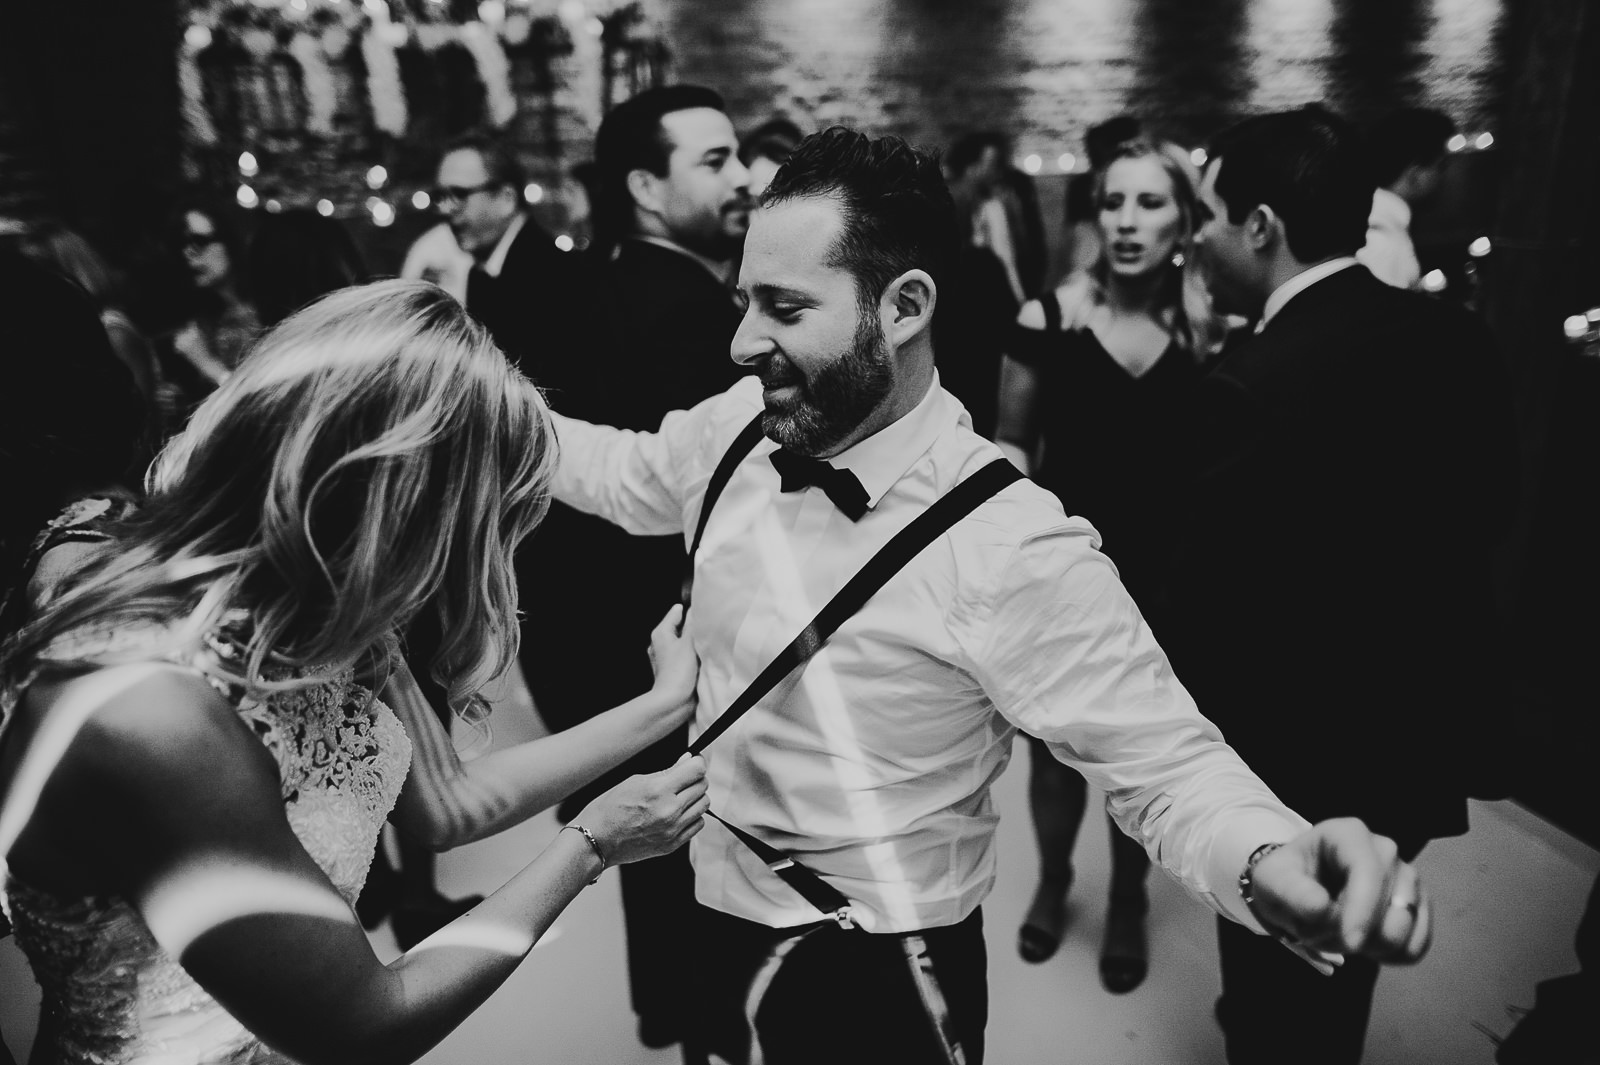 89 bride and groom dancing at wedding - Chicago Wedding Photography at Gallery 1028 // Courtnie + David